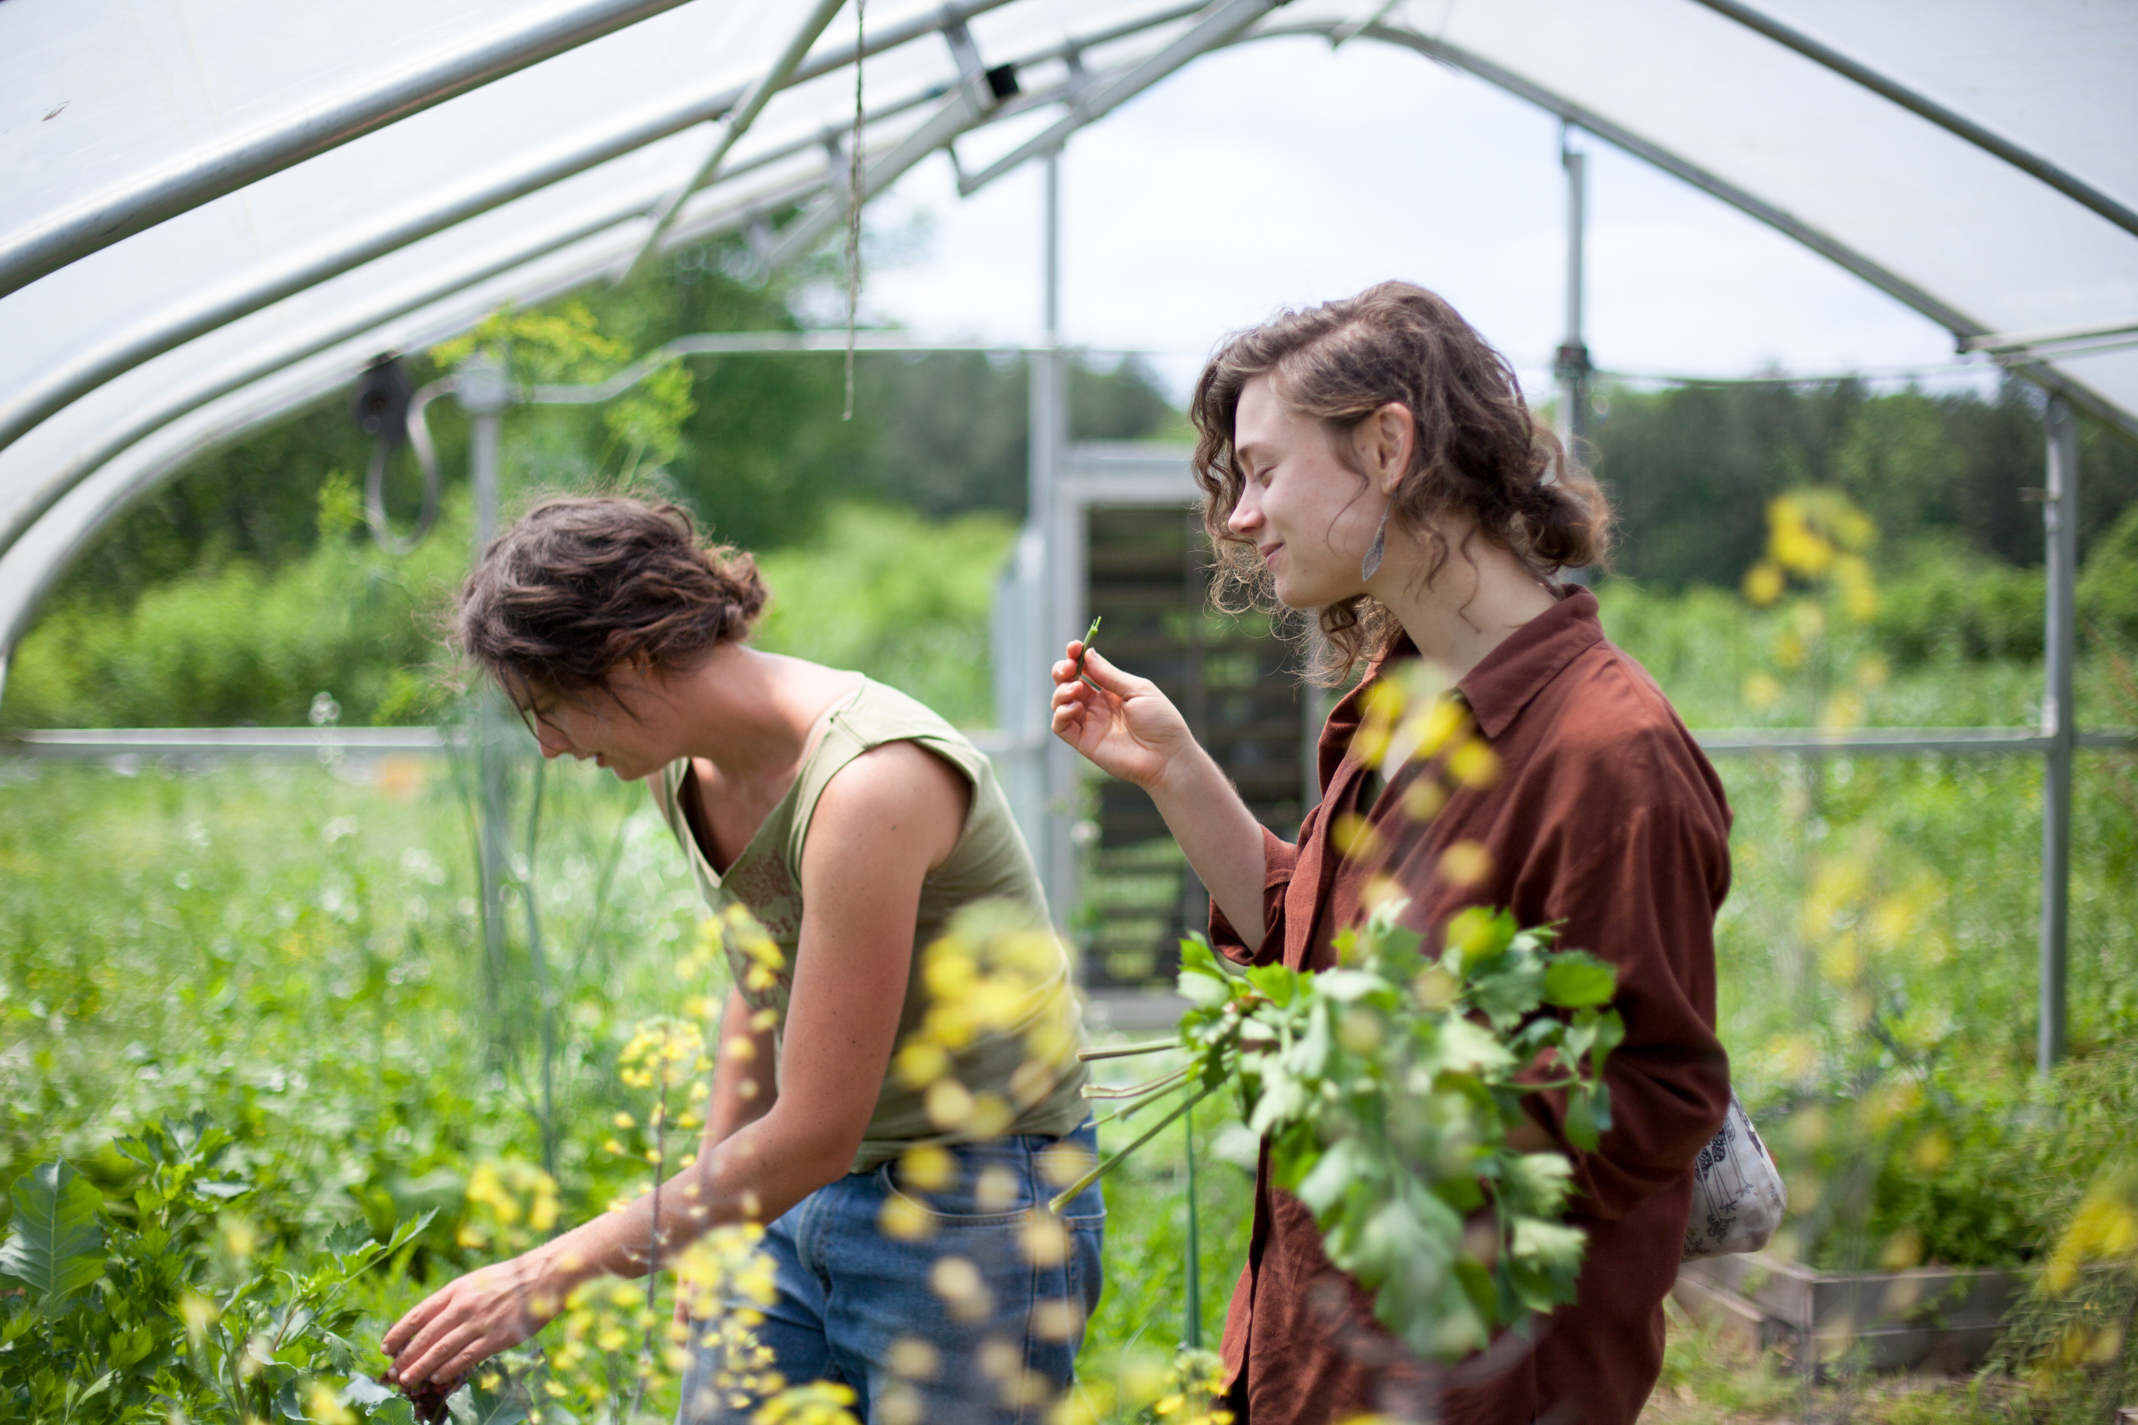 the-eco-institute-chapel-hill-nc-rising-earth-permaculture-environmental-education-gap-year-women-nature.jpg